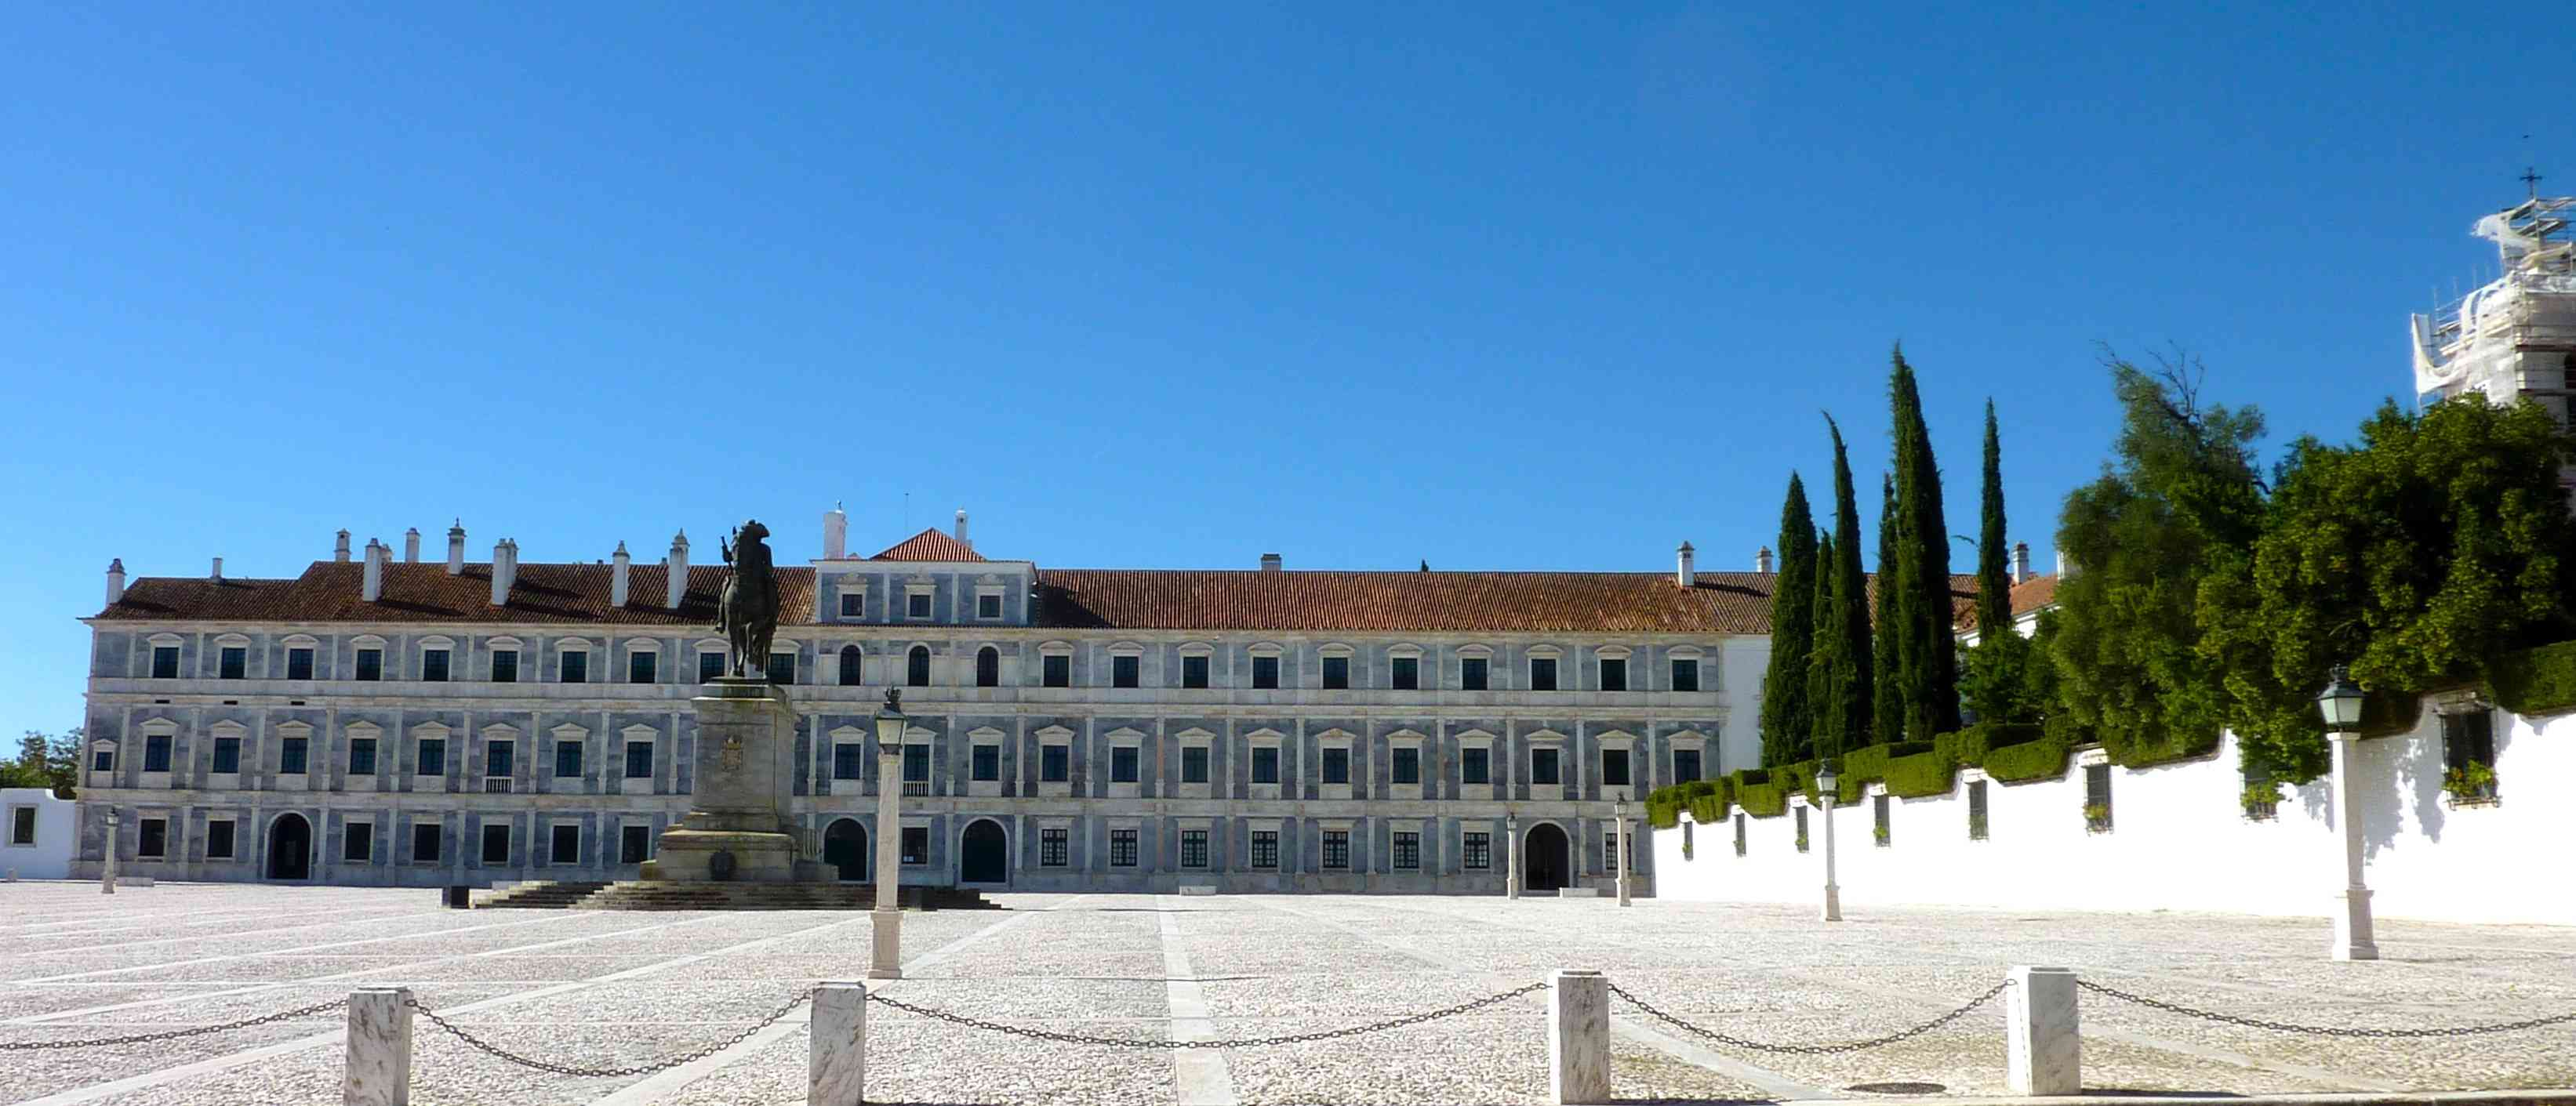 The Ducal Palace